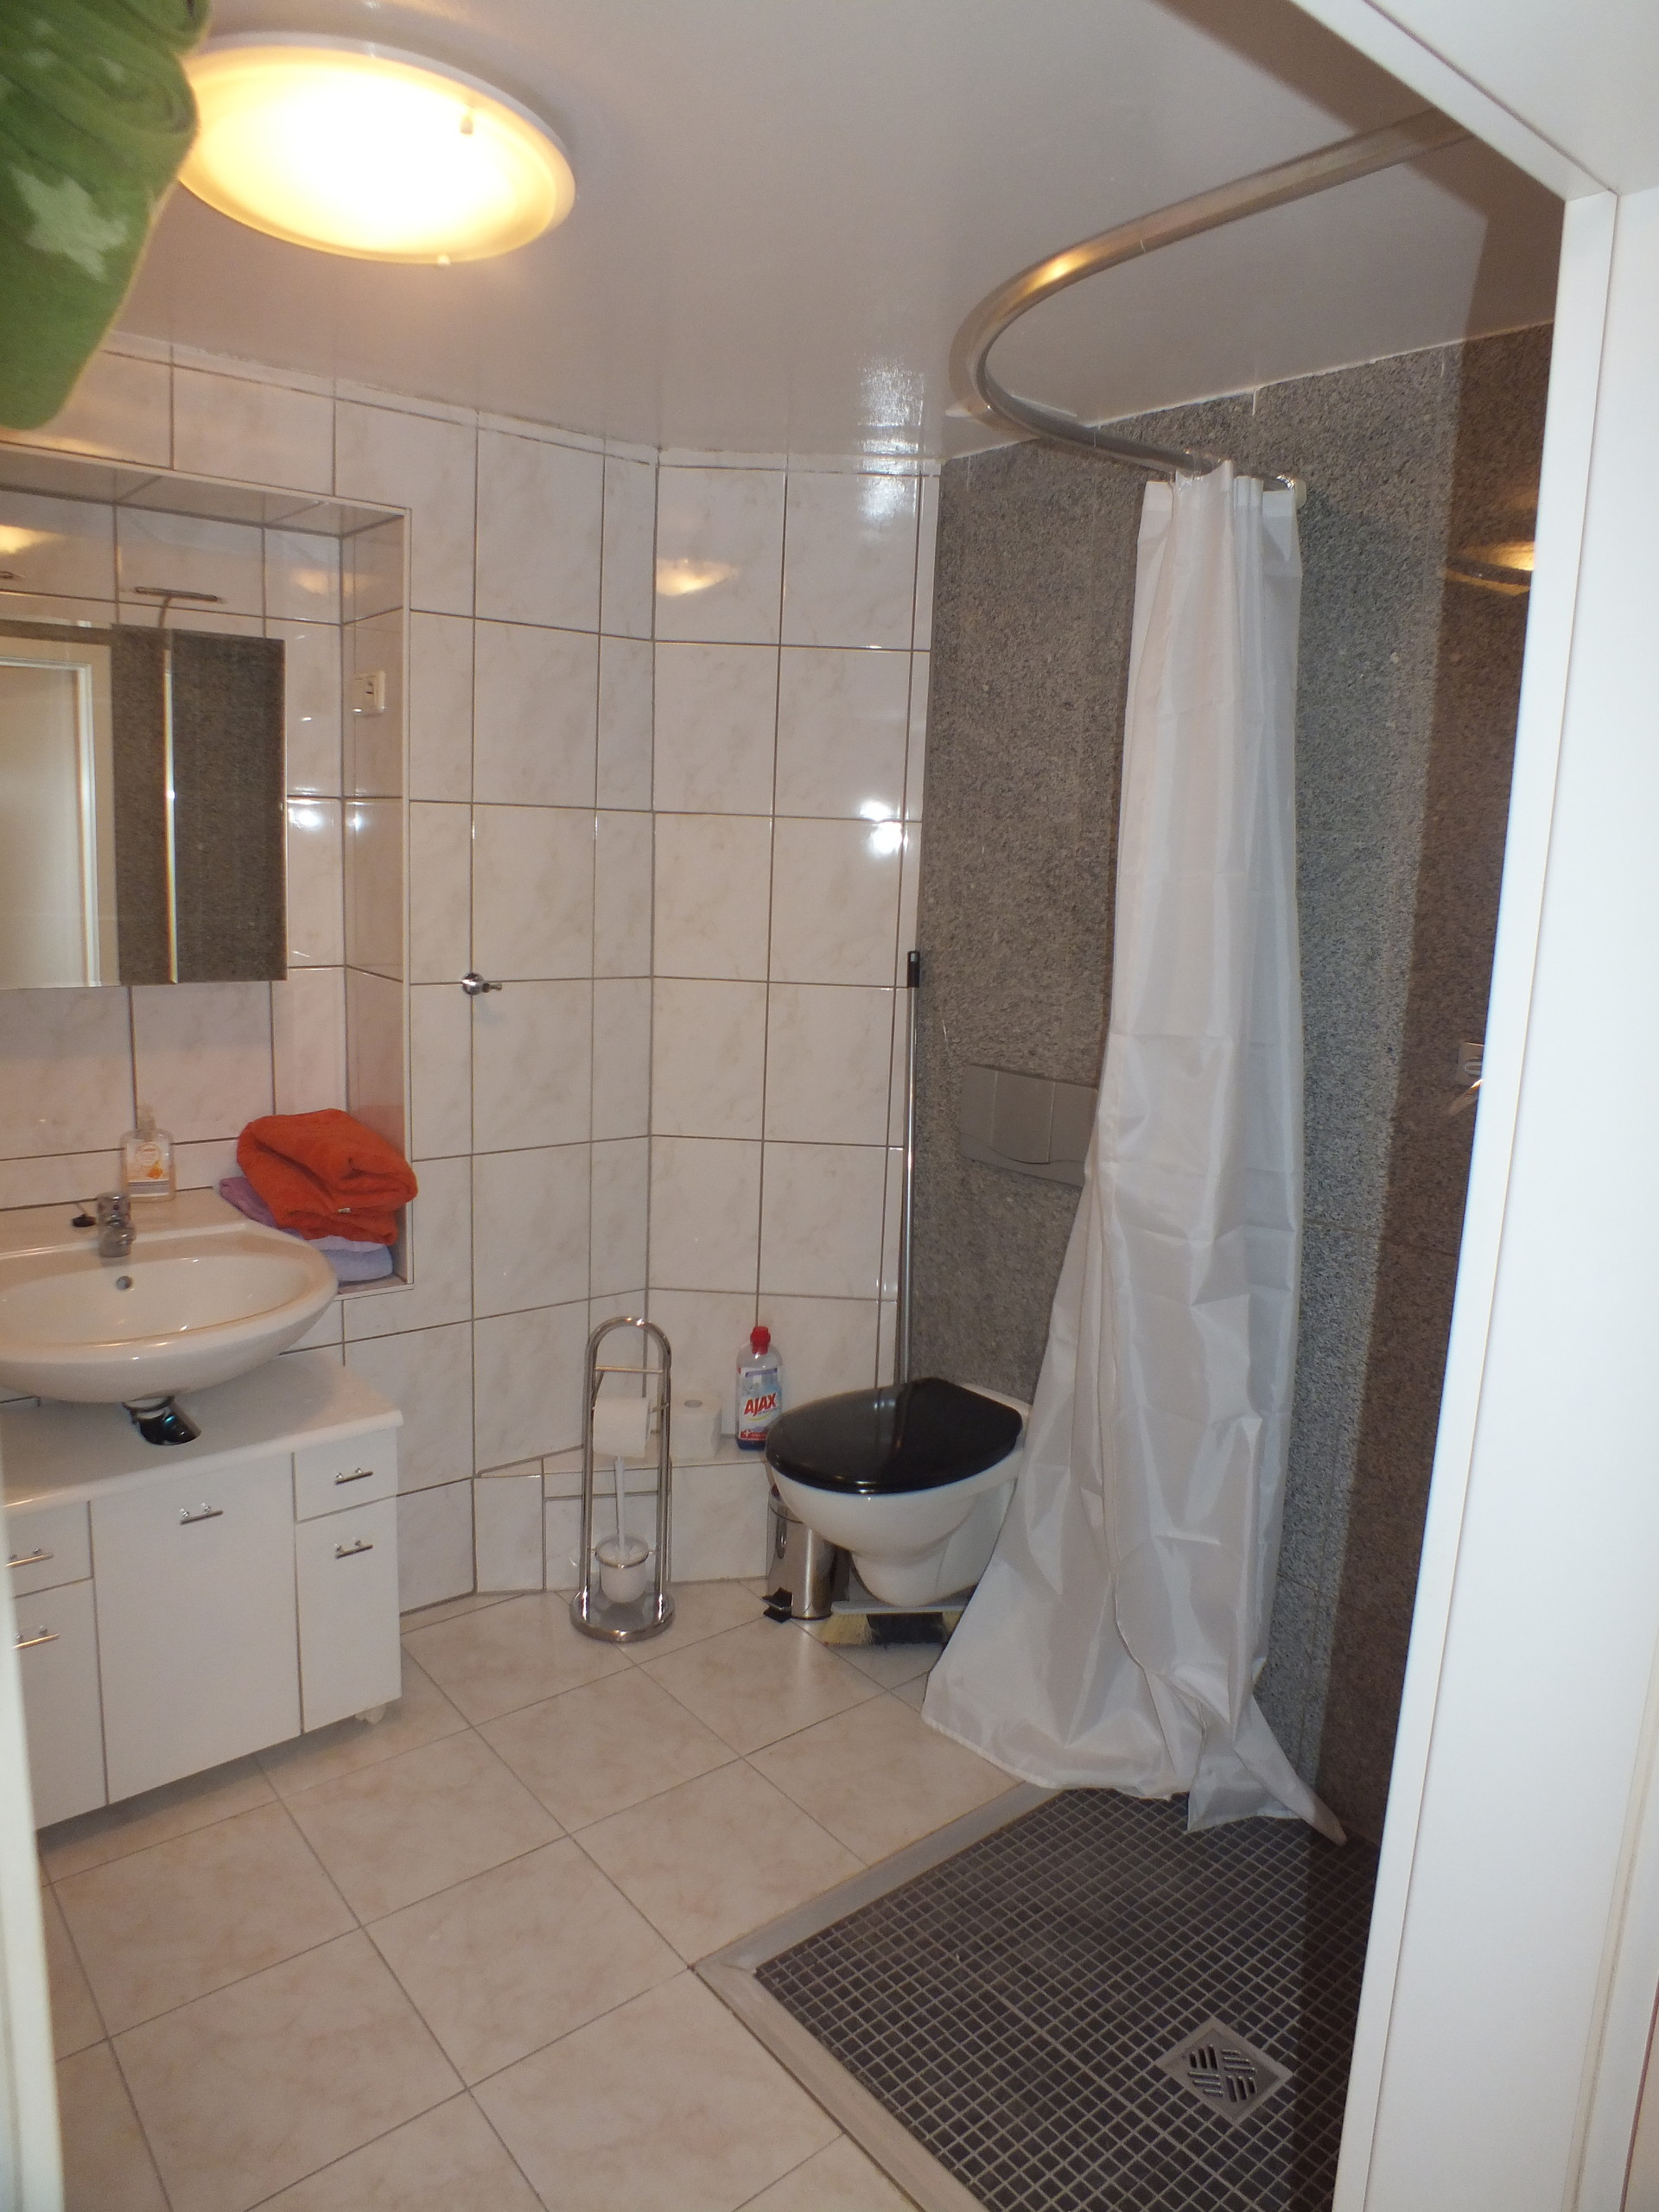 very nice apartment in central location with all inclusiv